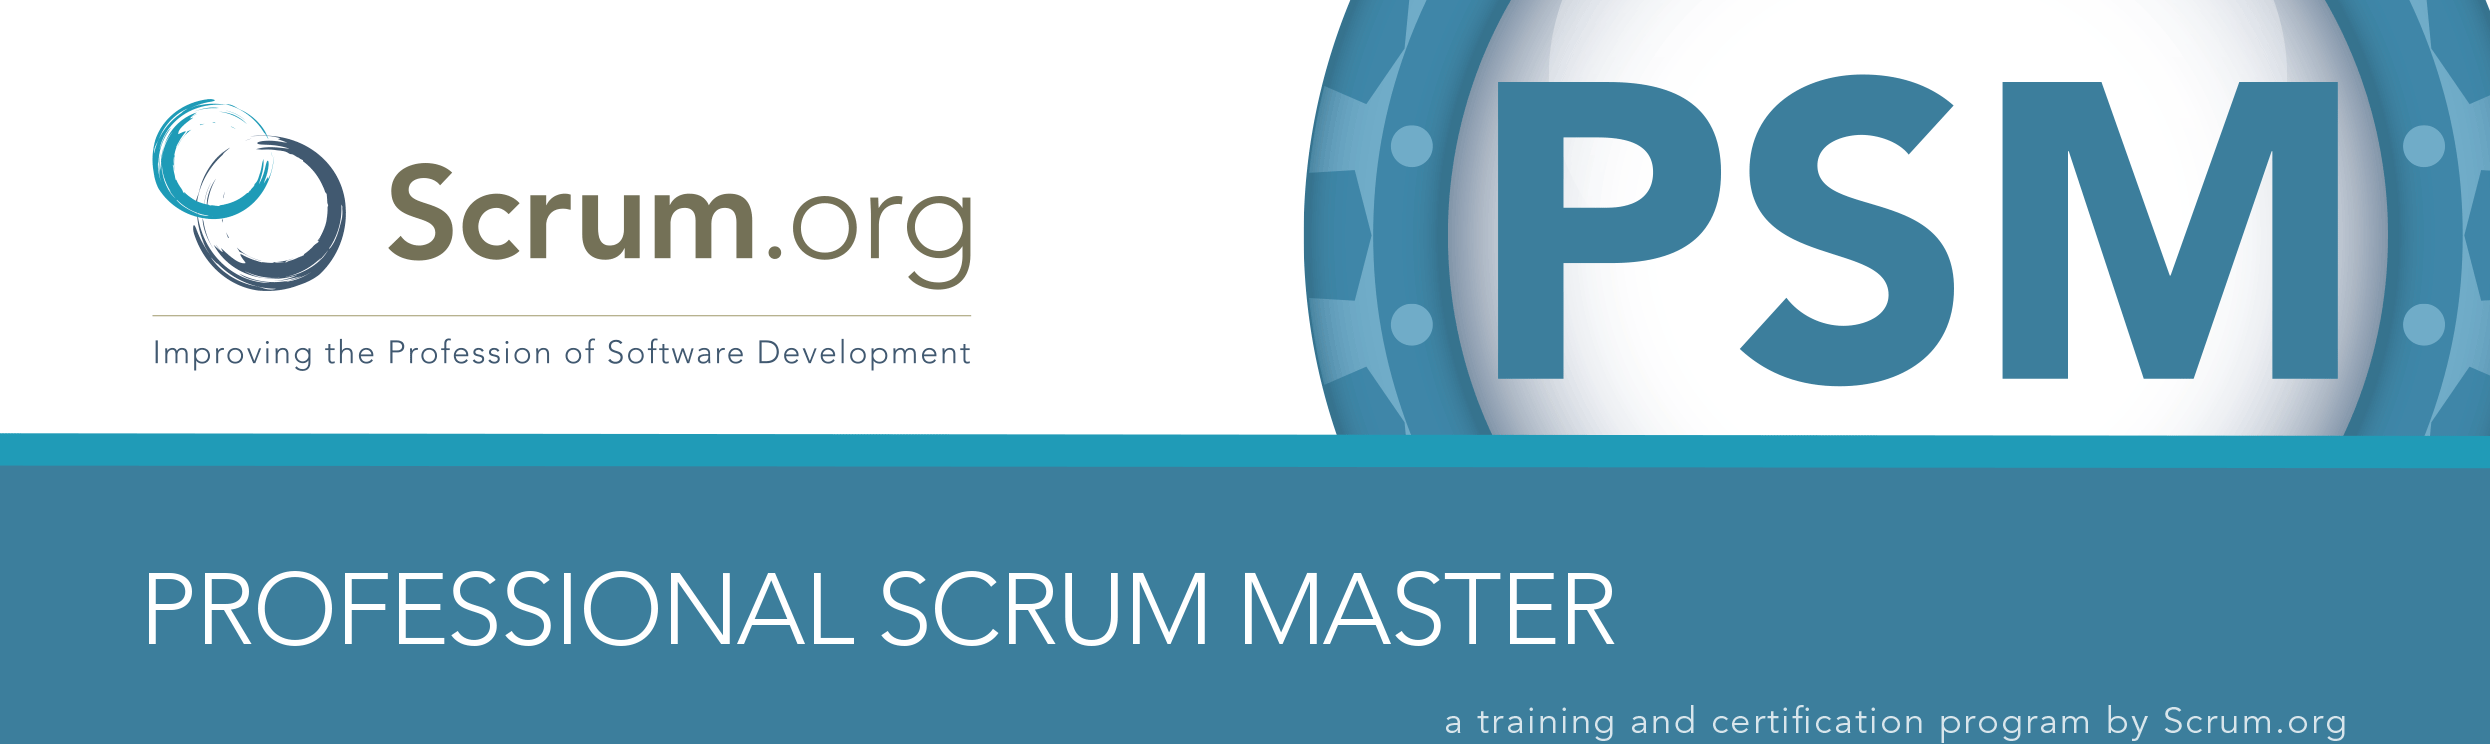 Professional Scrum Master (PSM) 1-2 Jun Hamburg